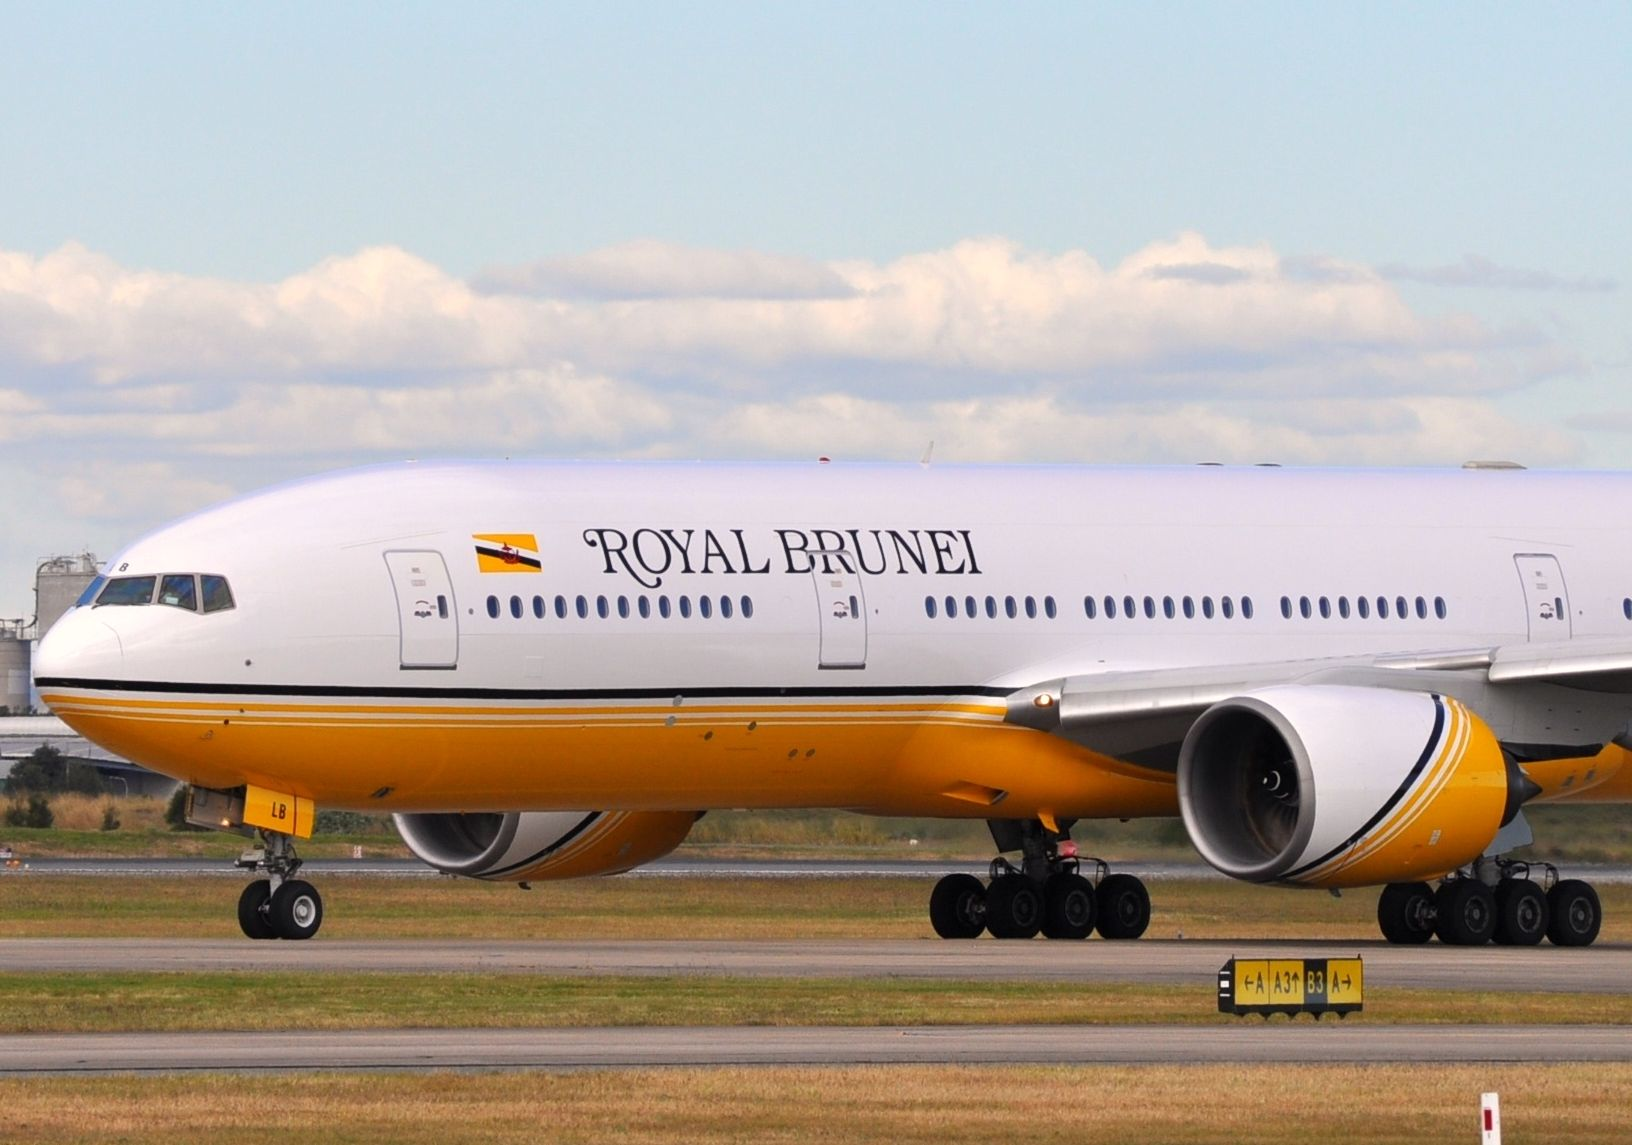 Boeing 777 w barwach Royal Brunei Airlines. Fot. David McKelvey/Wikimedia Commons LIC. 2.0